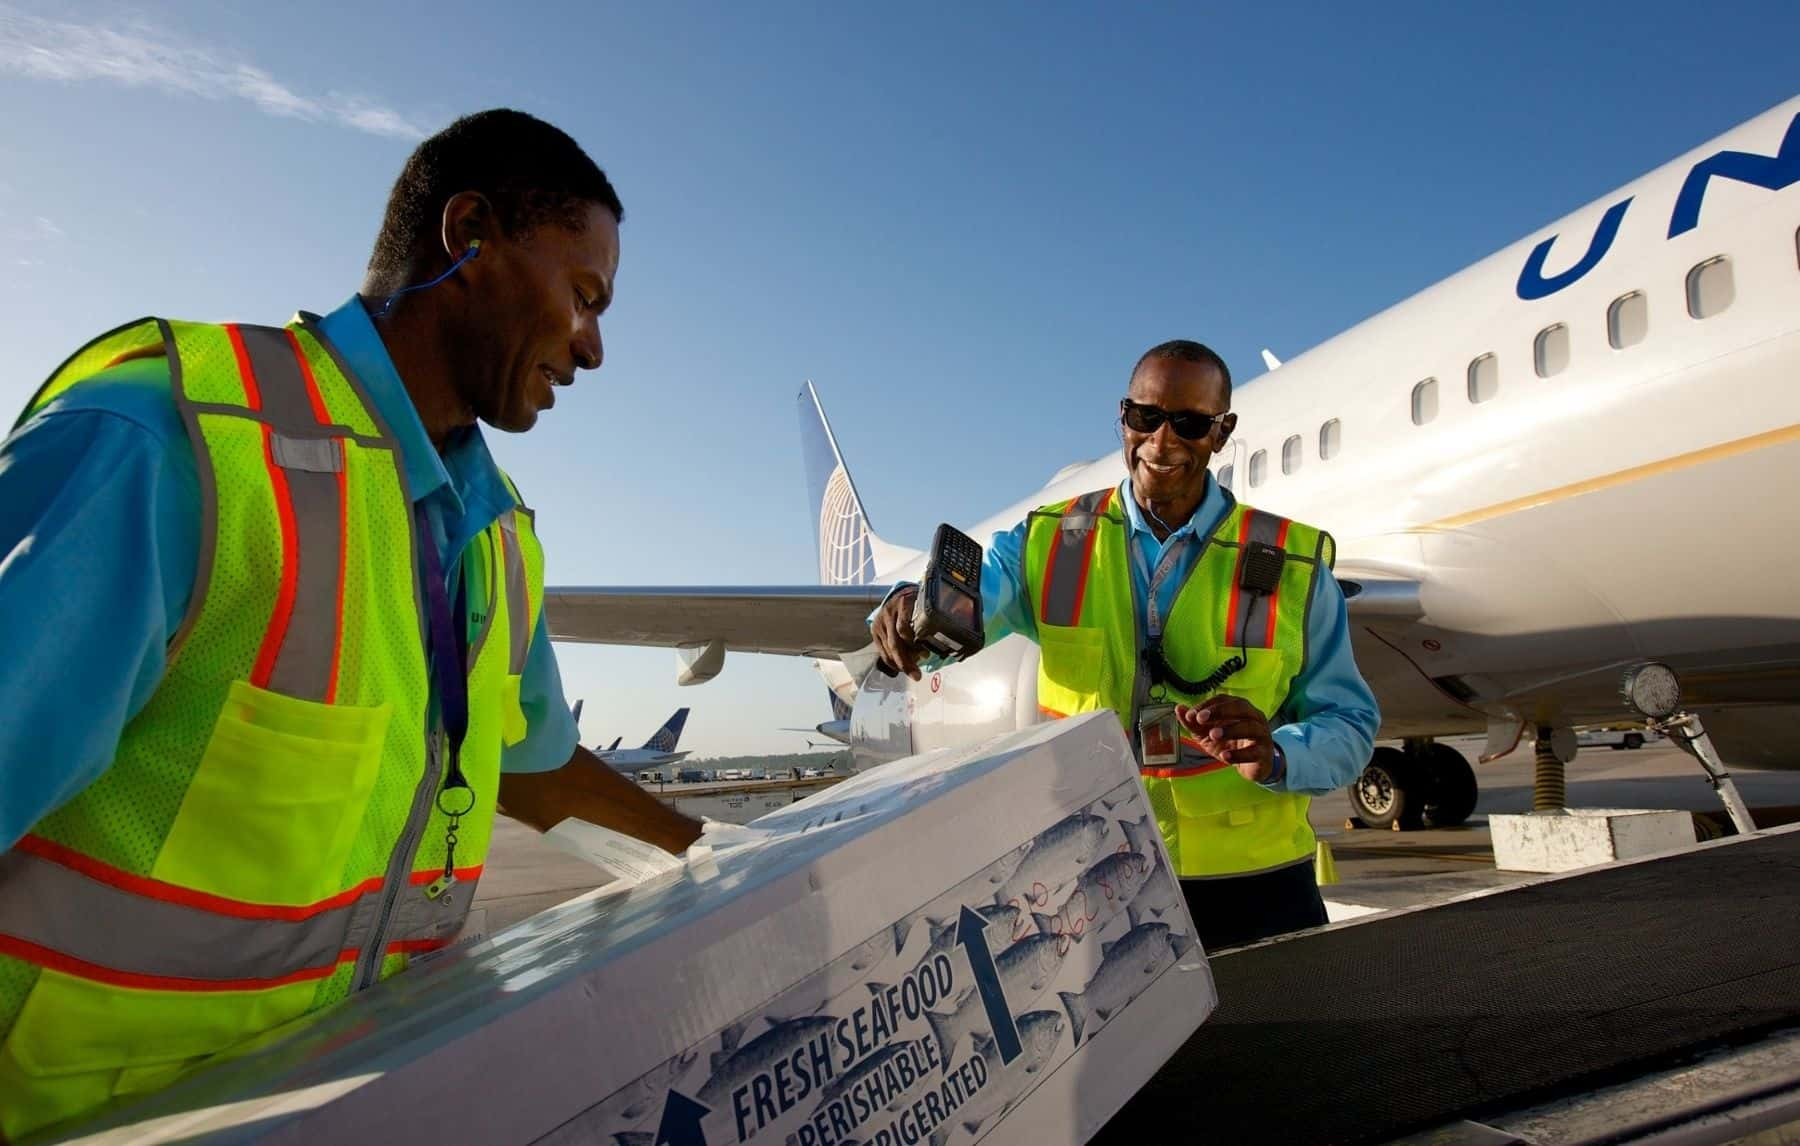 United Airlines employees loading cargo